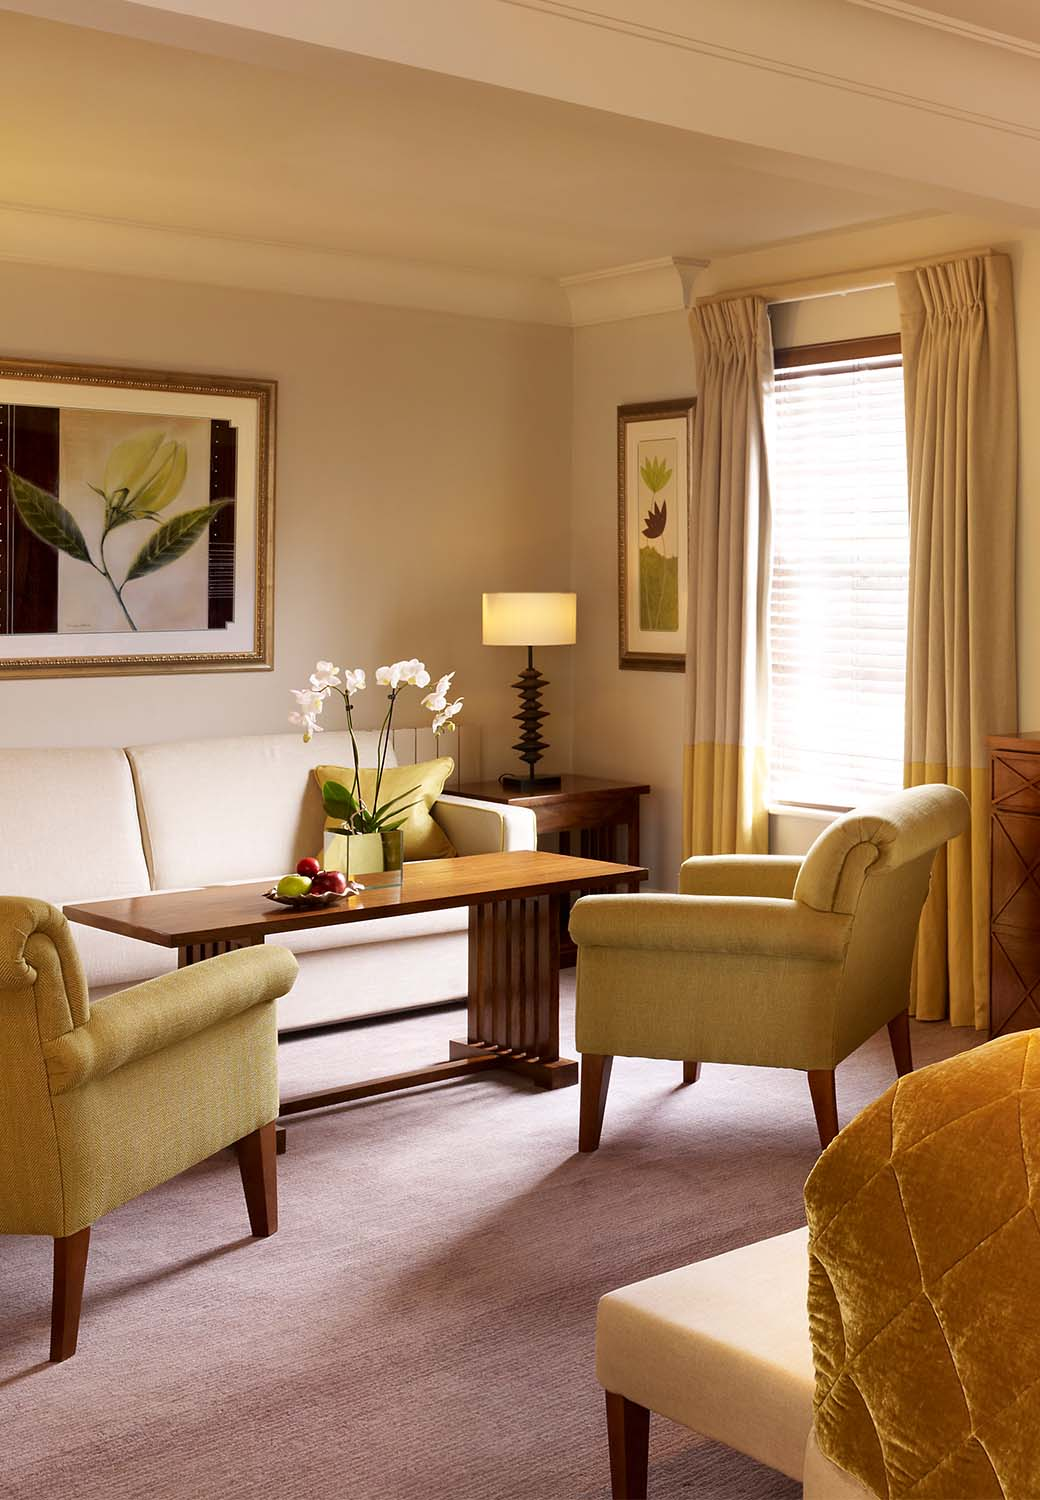 feature room at the Arden Hotel